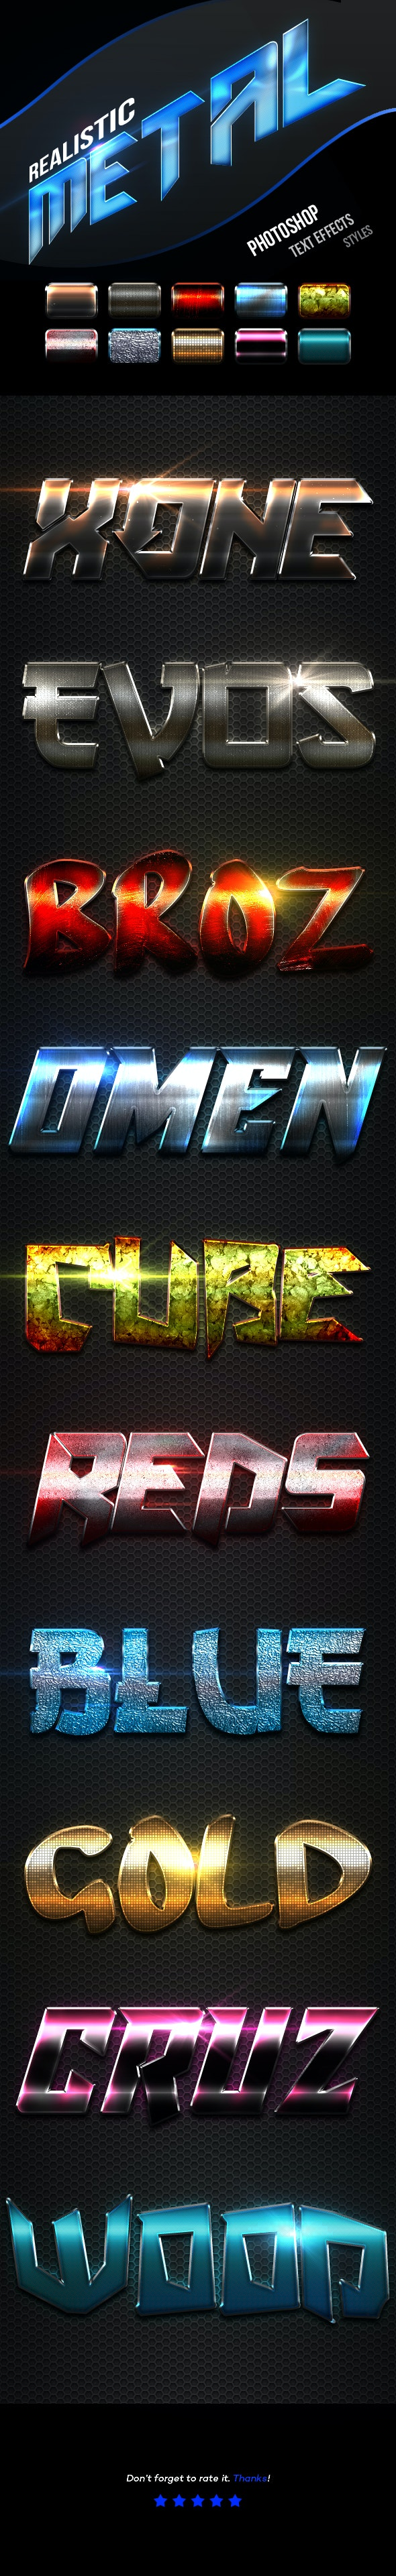 Realistic Metal Text Effects Vol.6 - Text Effects Actions